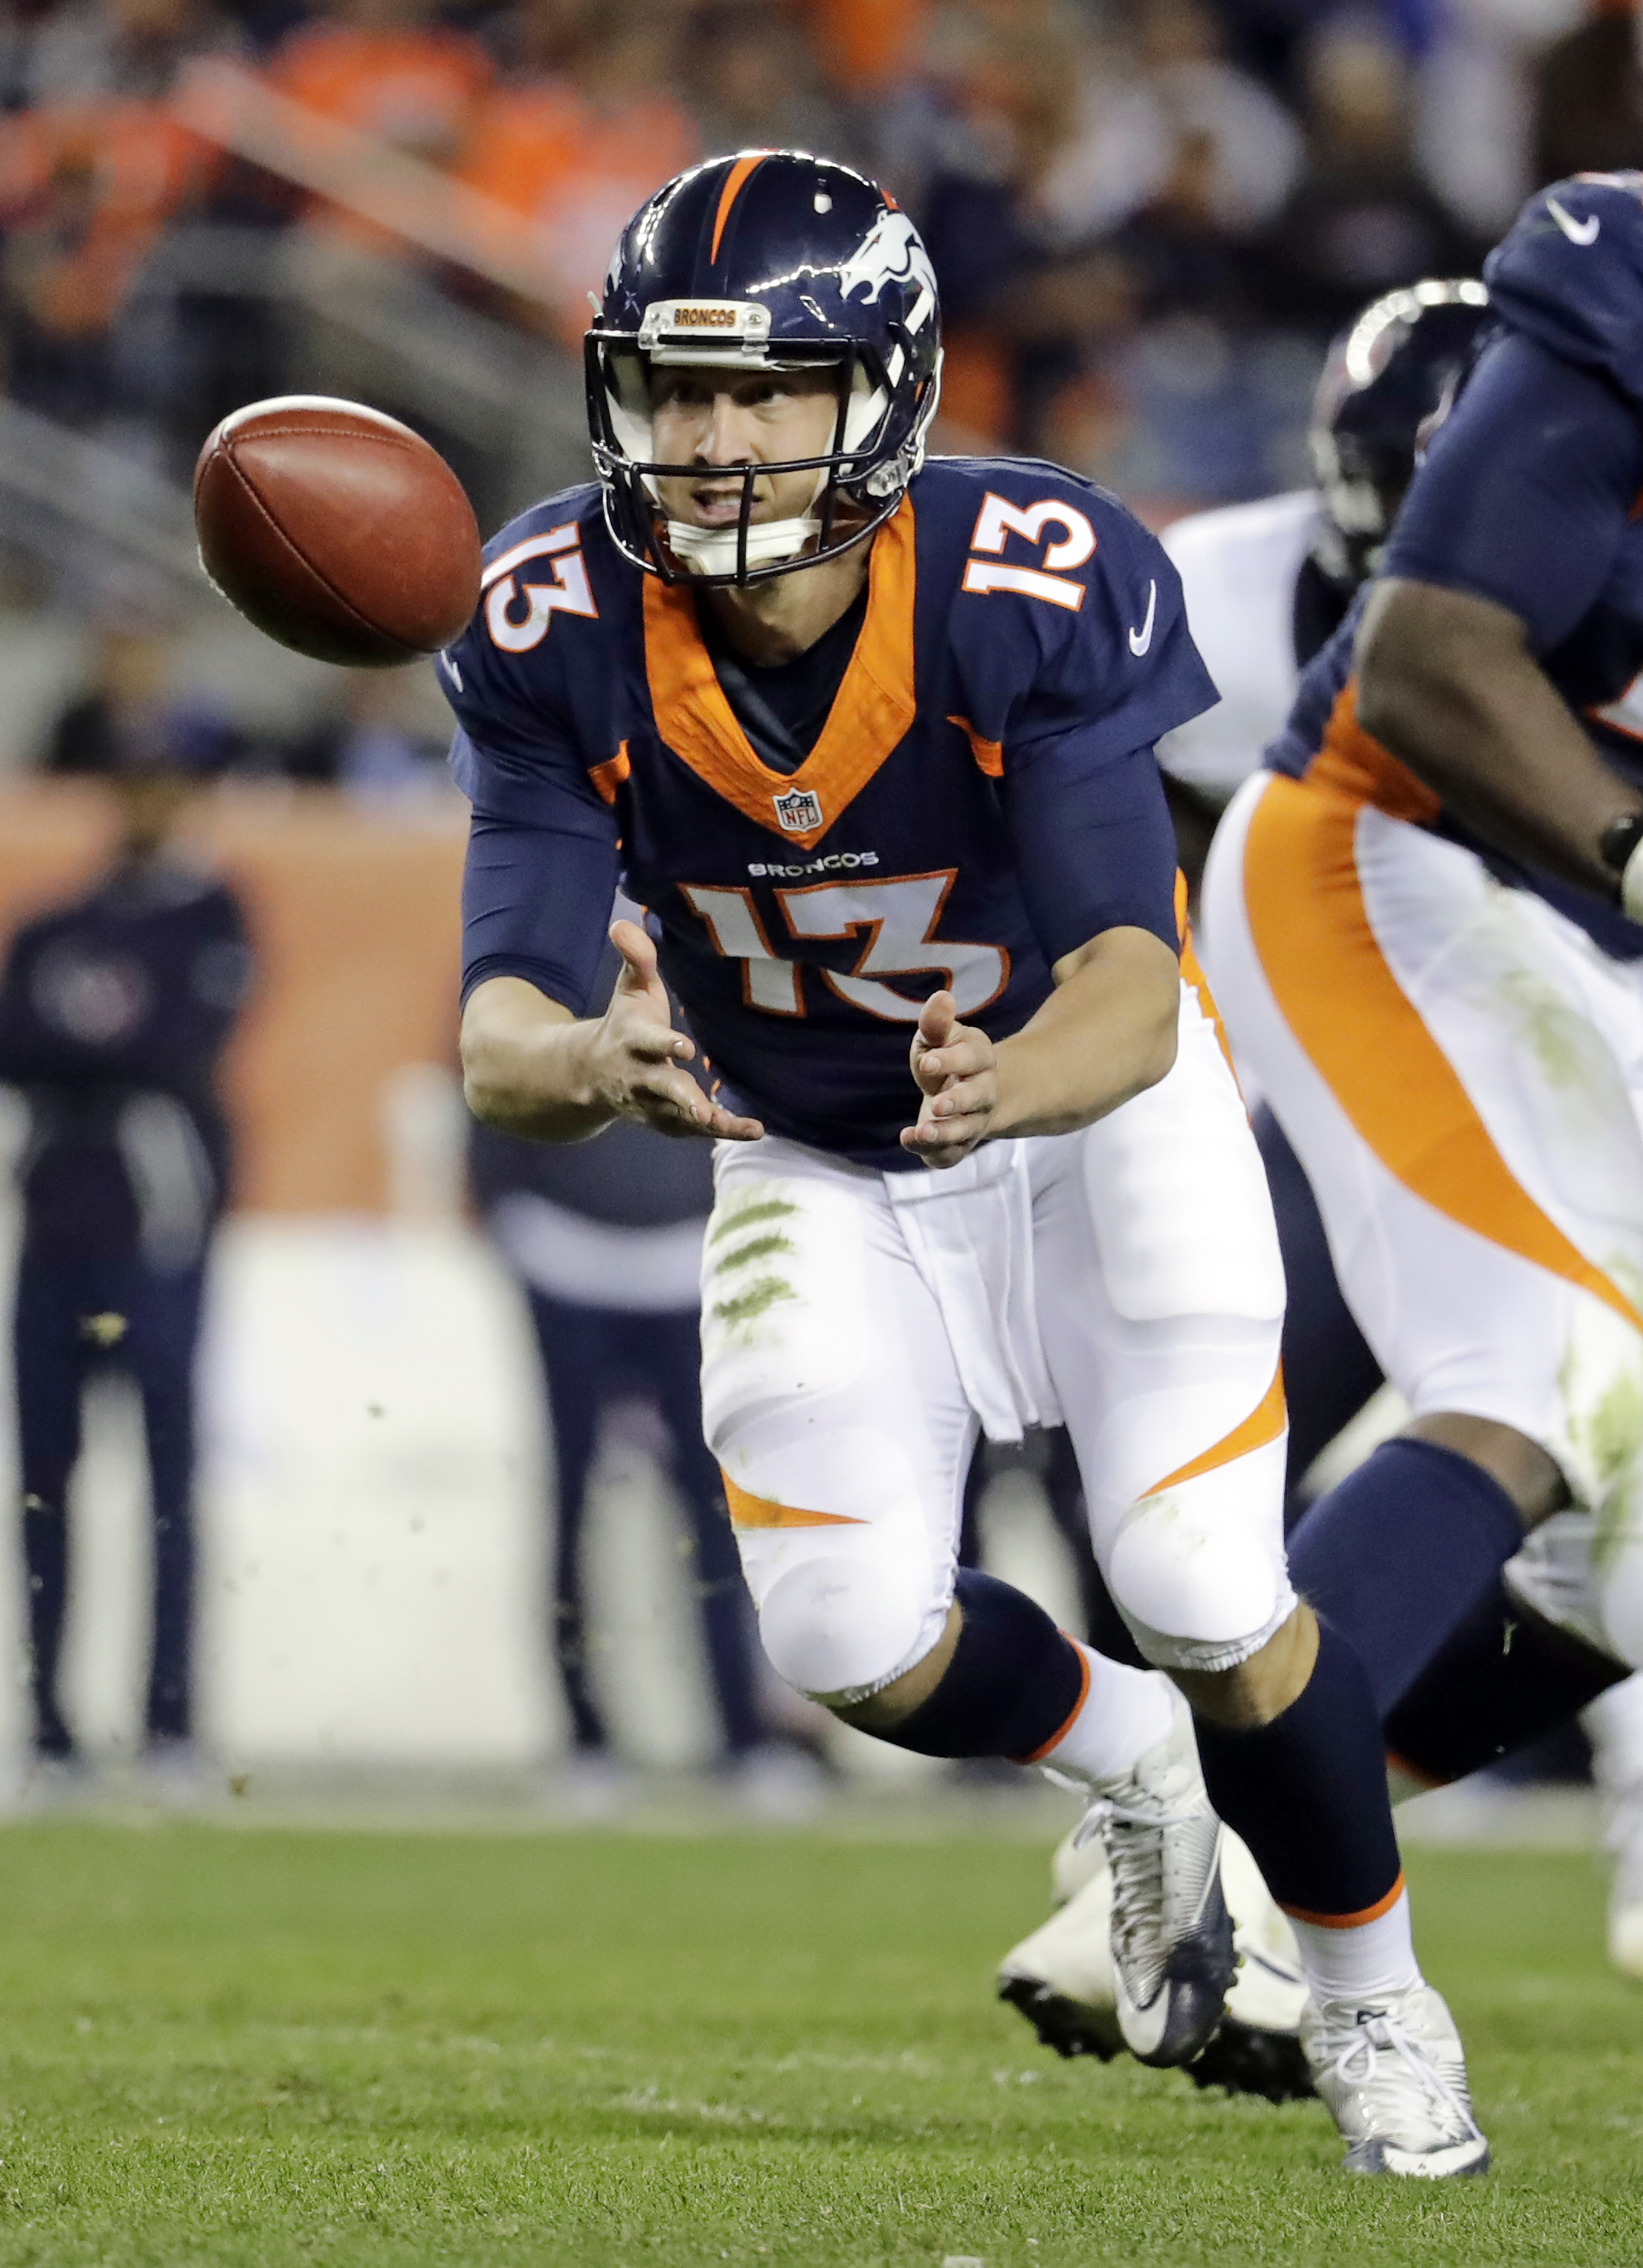 FILE - In this Oct. 24, 2016, file photo, Denver Broncos quarterback Trevor Siemian pitches the ball against the Houston Texans during the second half of an NFL football game,  in Denver.  The defending Super Bowl champion Denver Broncos need a win Sunday